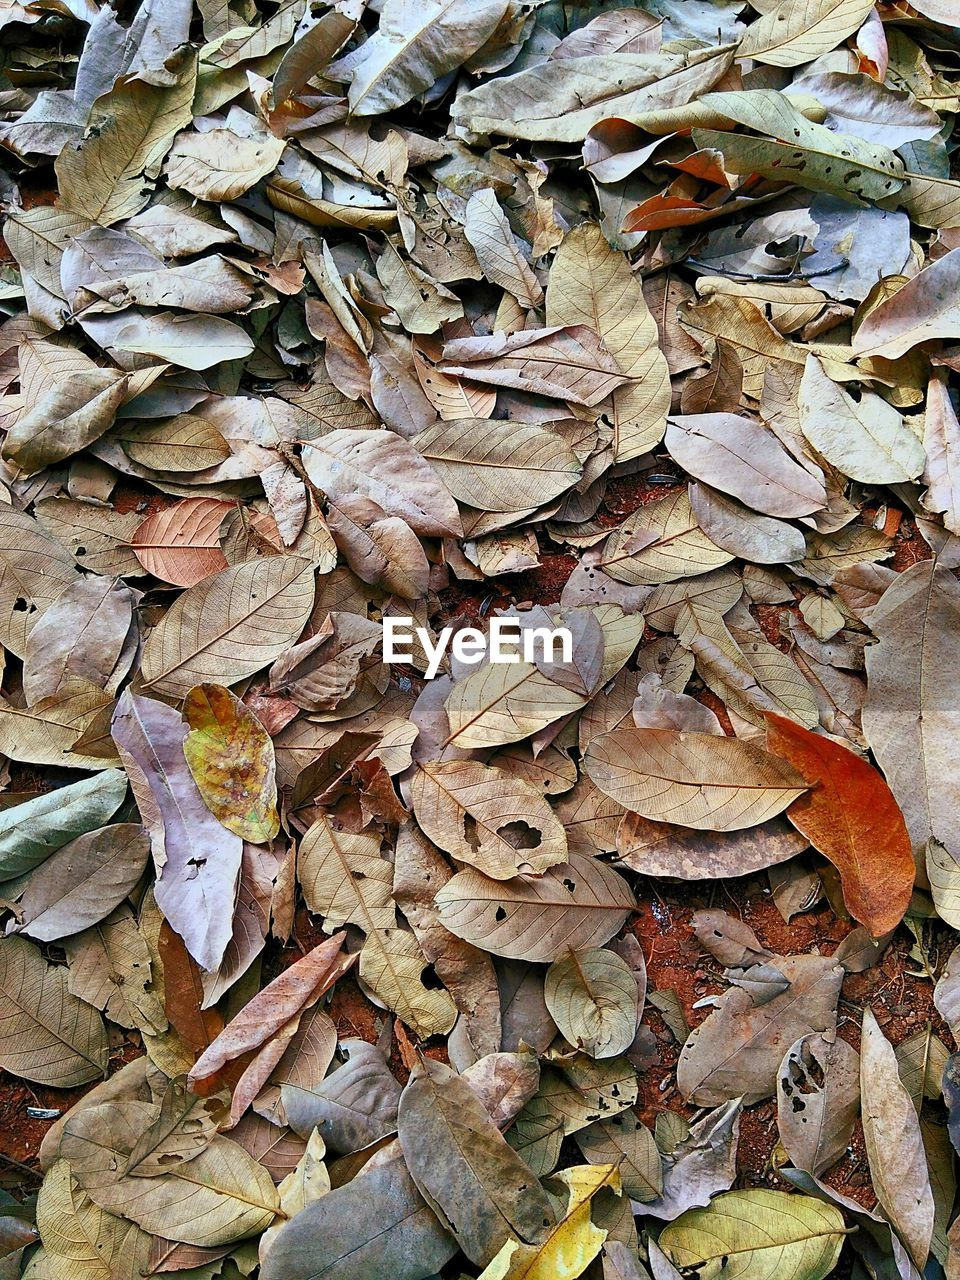 autumn, leaf, change, dry, leaves, abundance, fallen, nature, no people, outdoors, large group of objects, fragility, day, backgrounds, full frame, maple leaf, close-up, maple